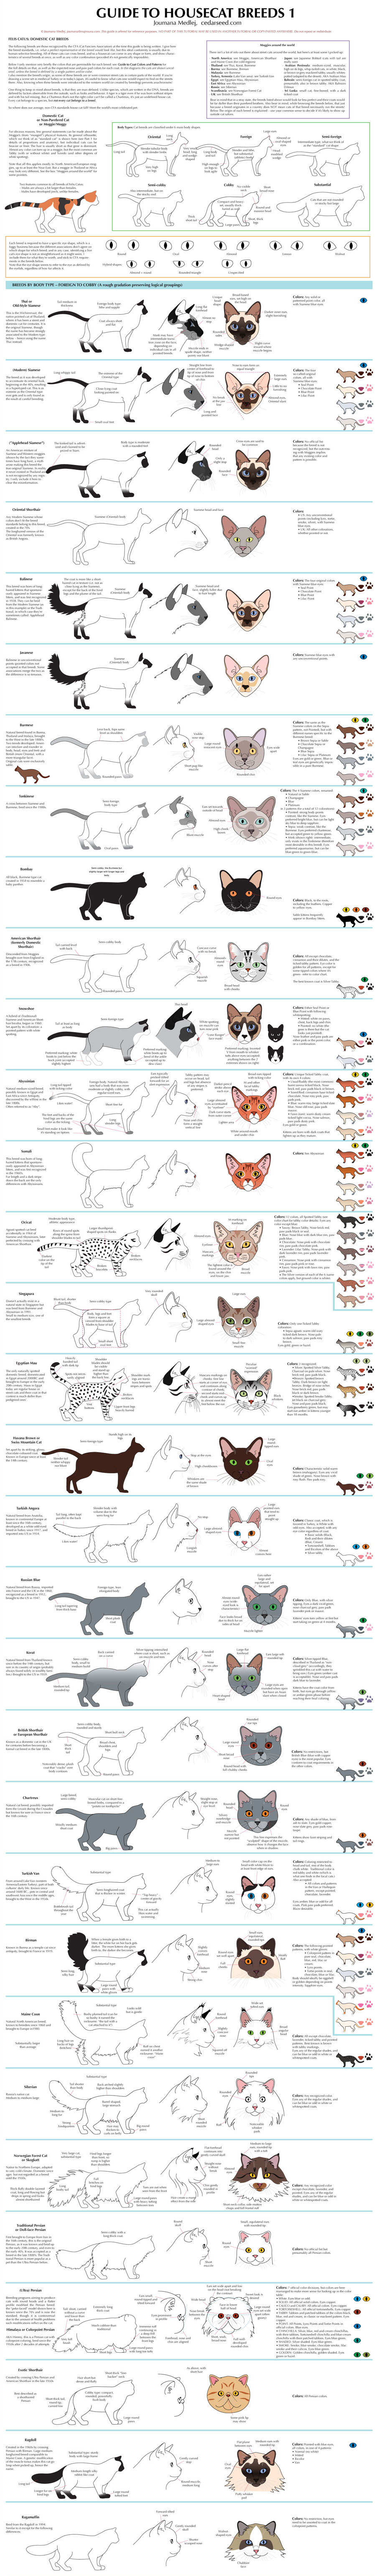 Guide to Housecat Breeds 1